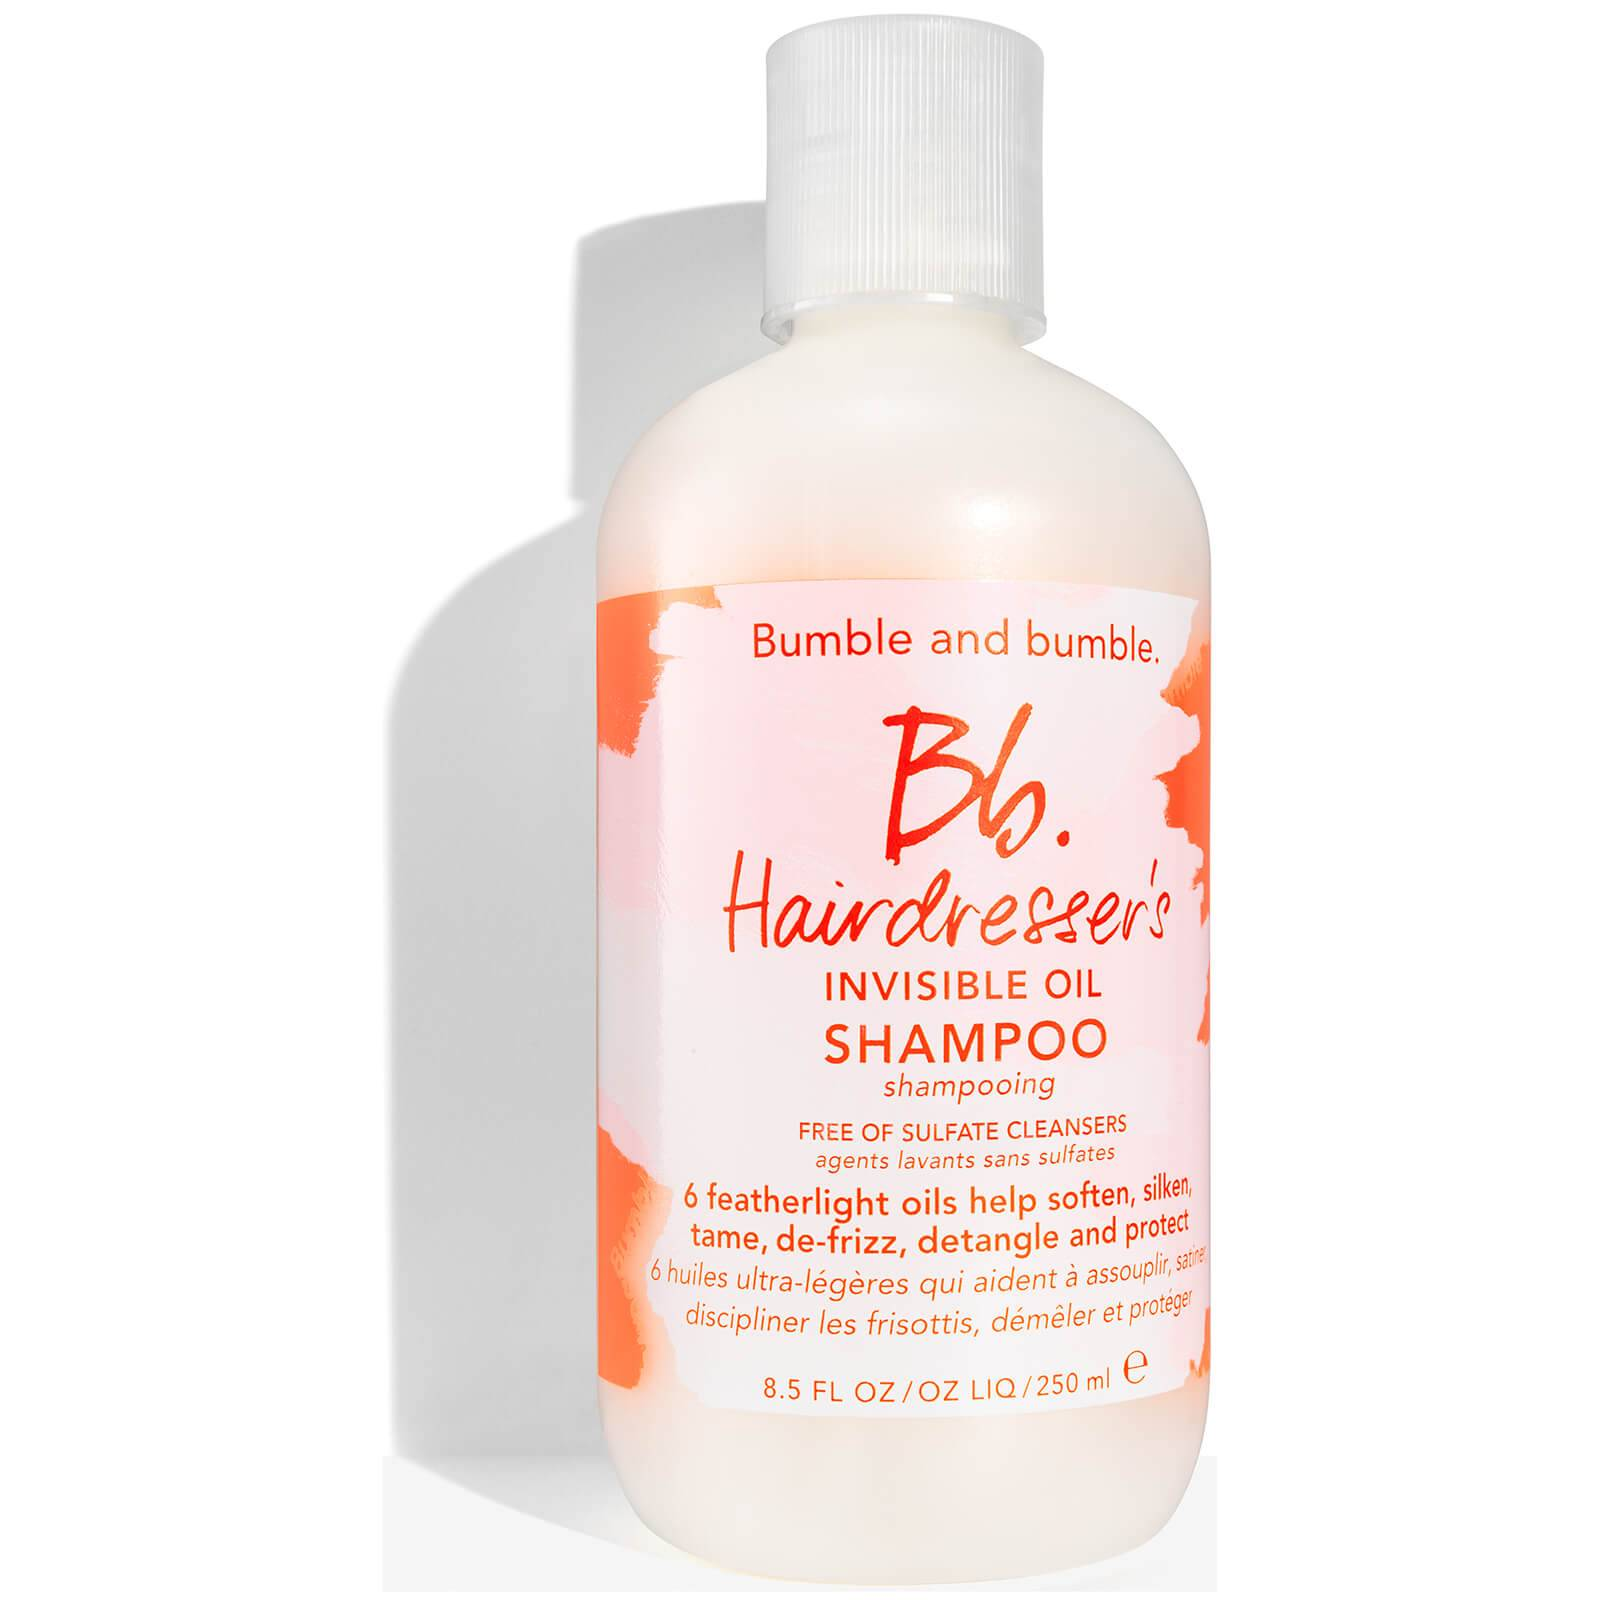 Bumble and bumble Shampoing sans sulfateHairdressers Invisible Oil de Bumble and bumble250ml